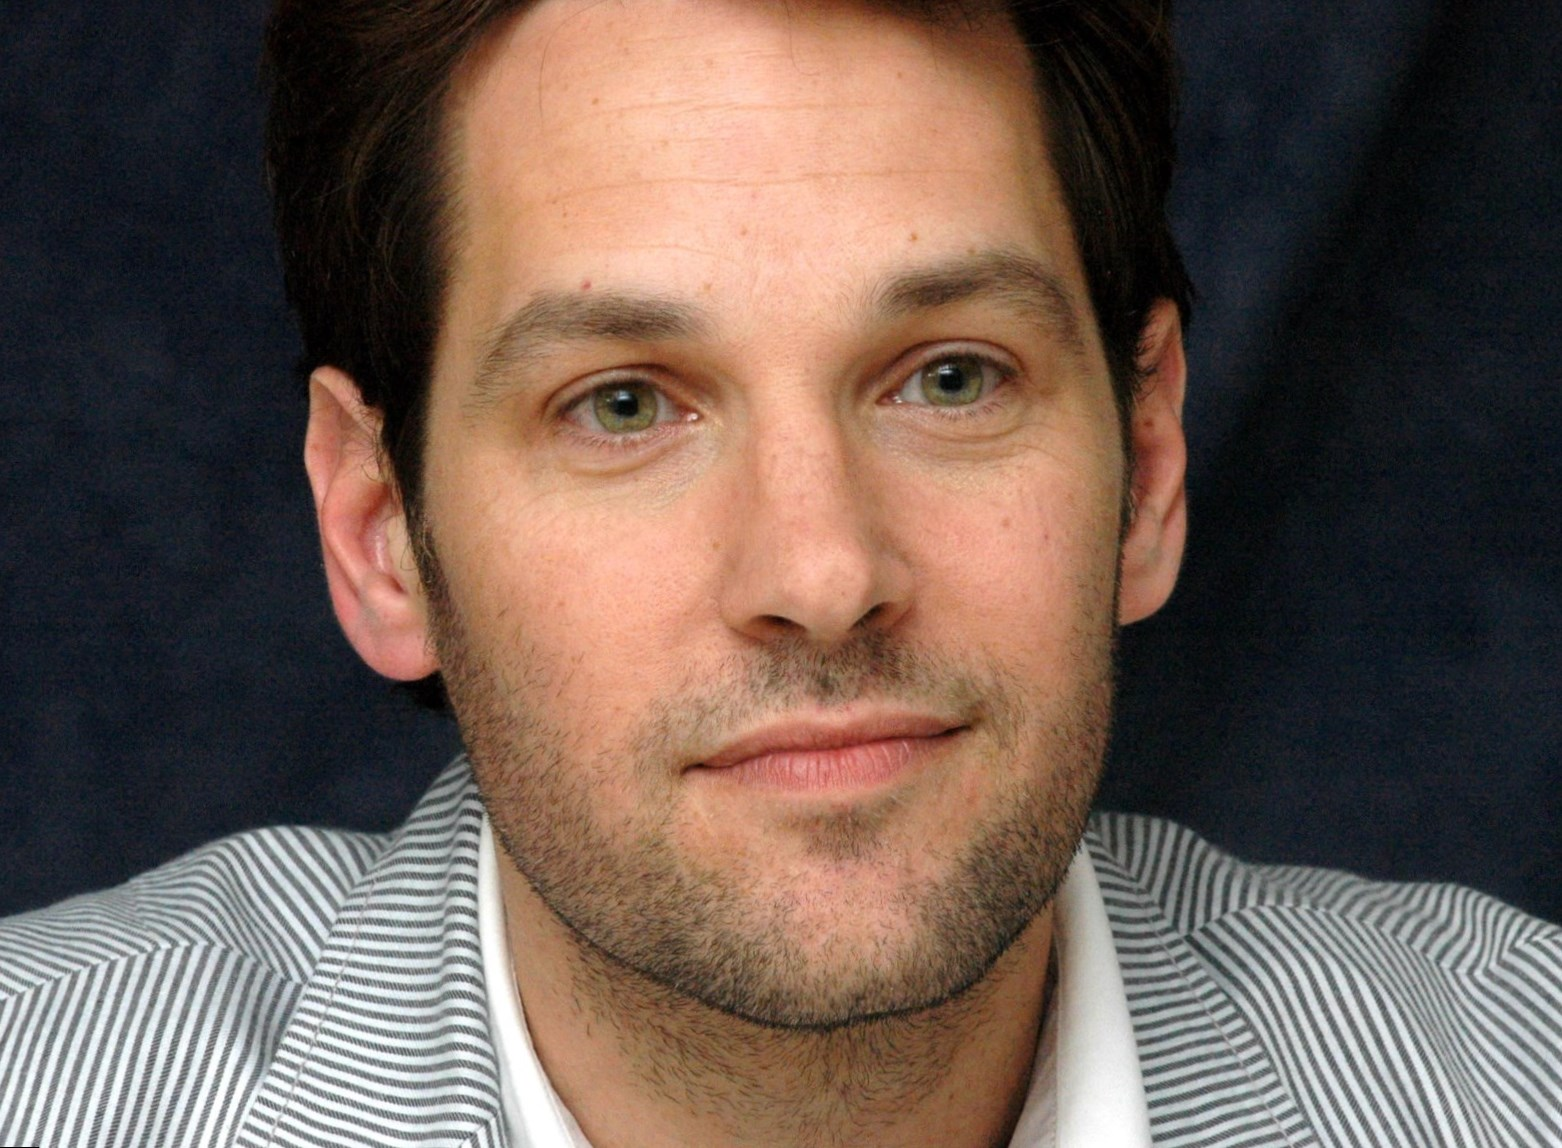 Paul Rudd - Height, Weight, Age